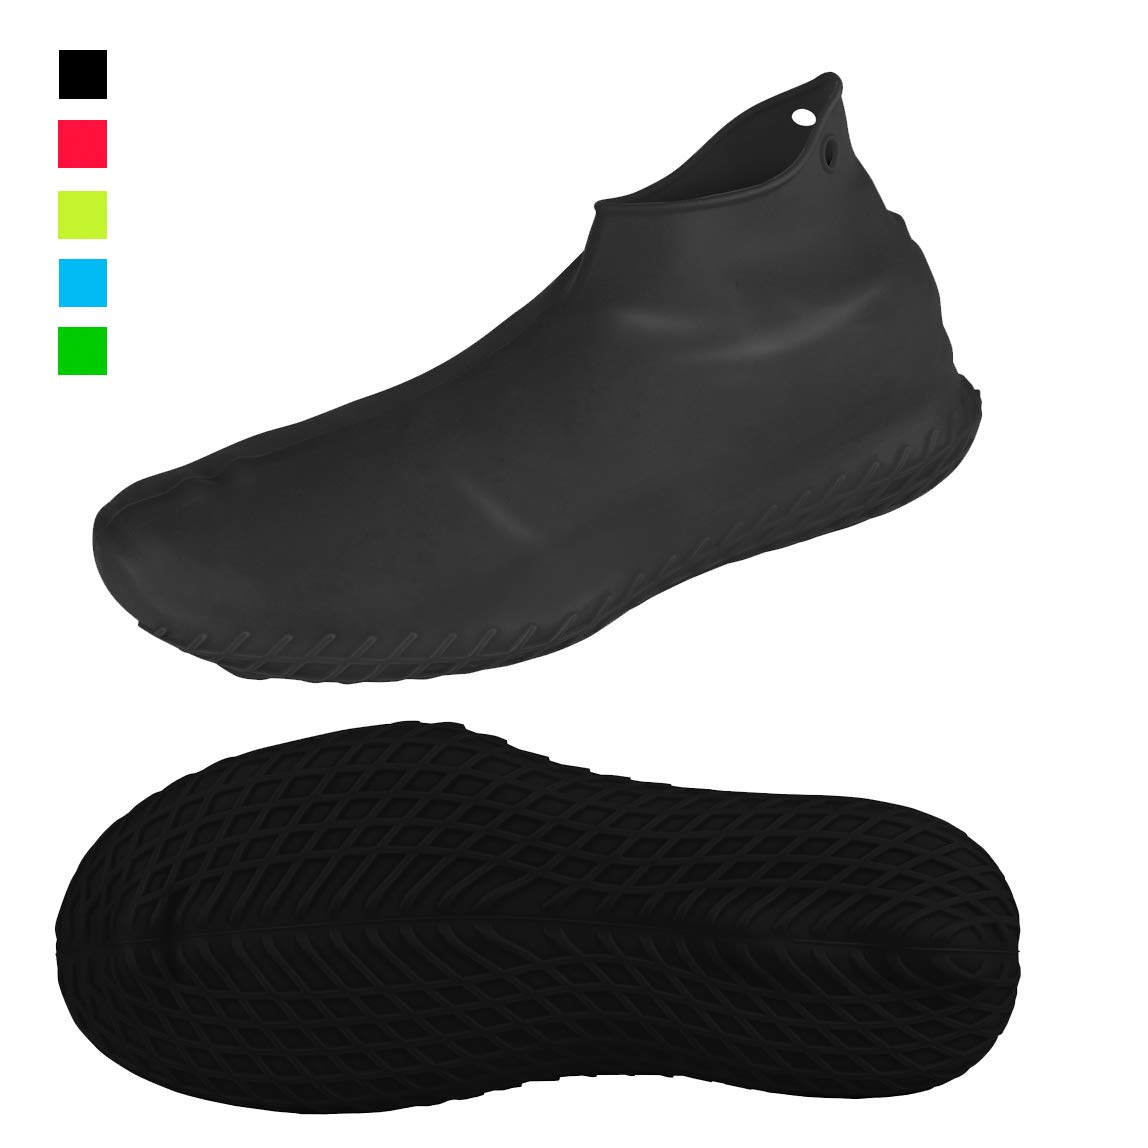 013d1ca1bd972 LEGELITE Reusable Silicone Waterproof Shoe Covers, No-Slip Silicone Rubber  Shoe Protectors for Kids,Men and Women